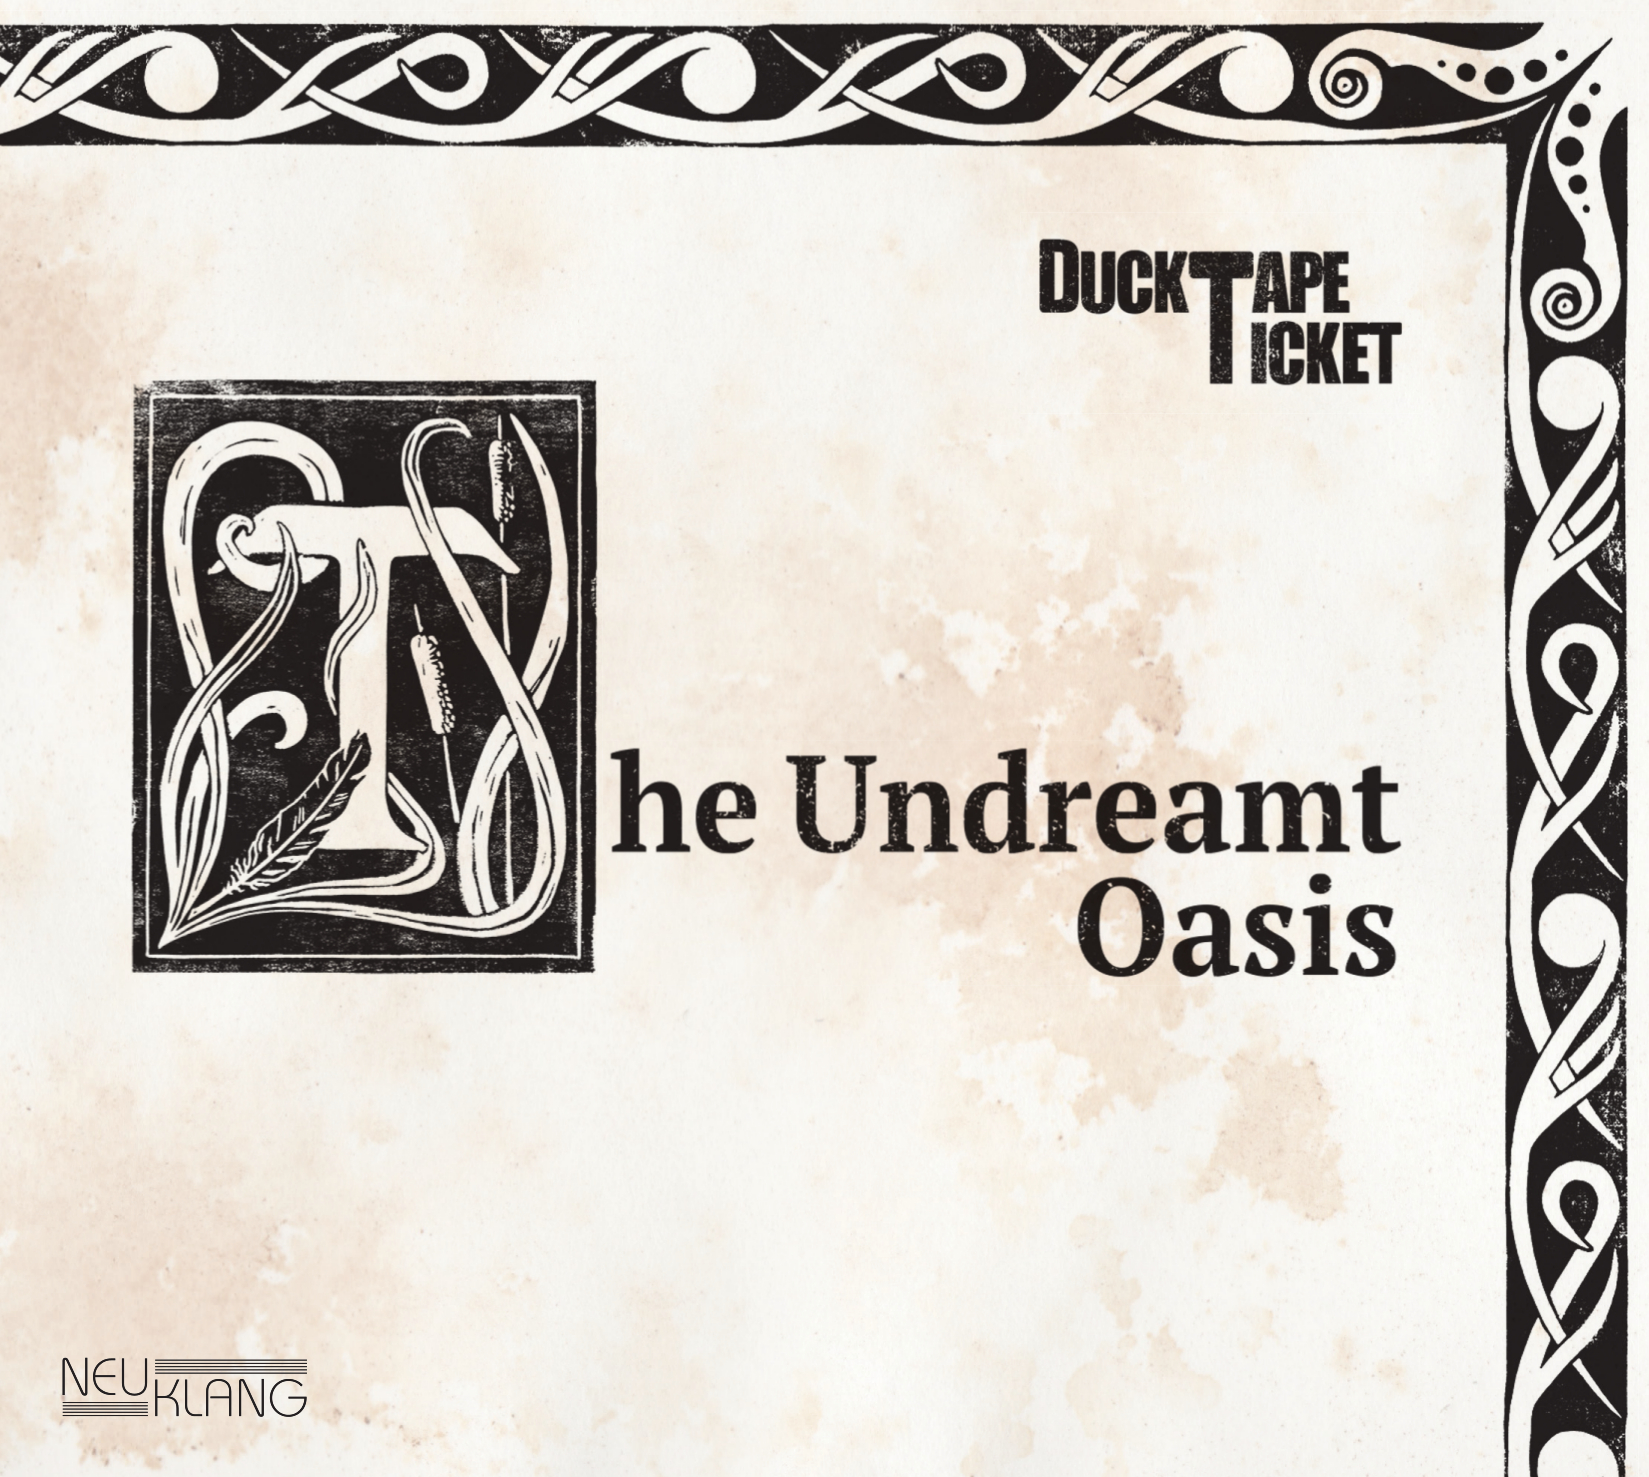 The Undreamt Oasis Cover - print